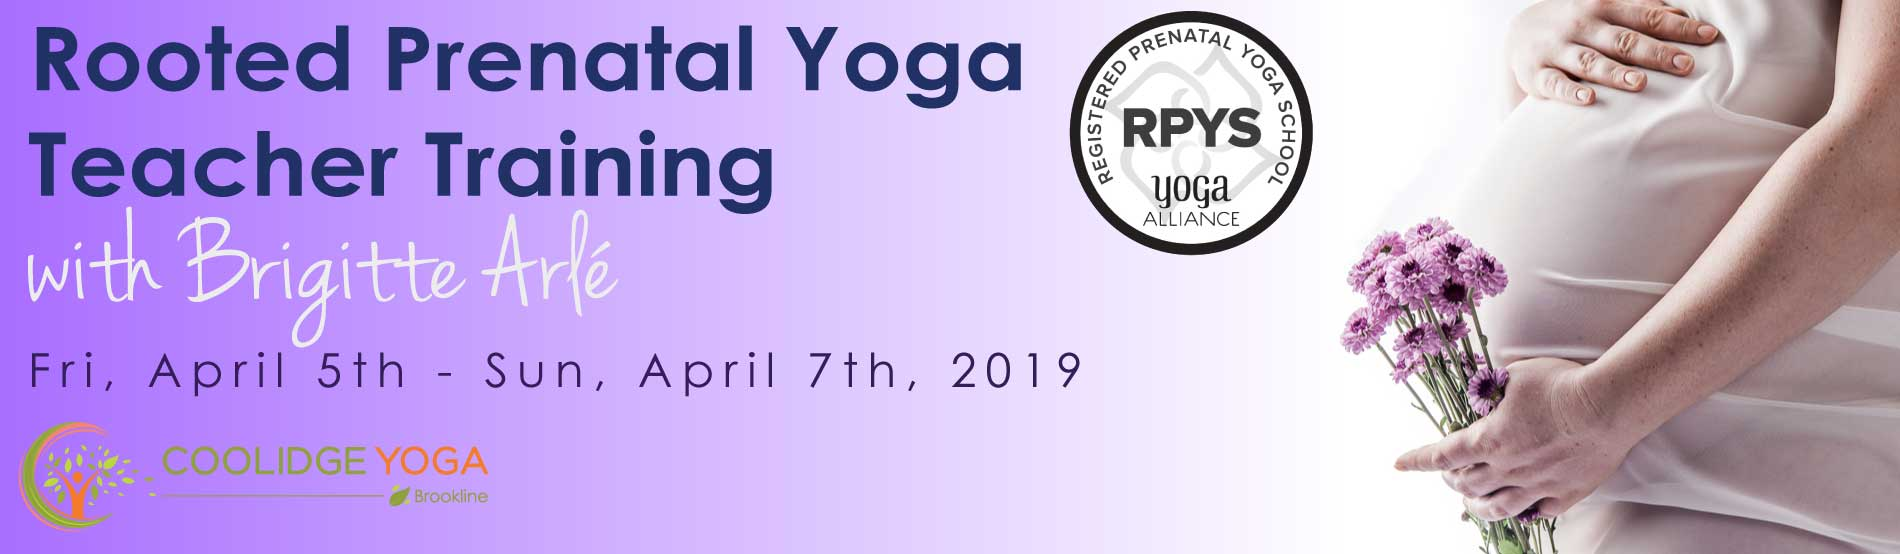 Prenatal Yoga Teacher Training at Coolidge Yoga